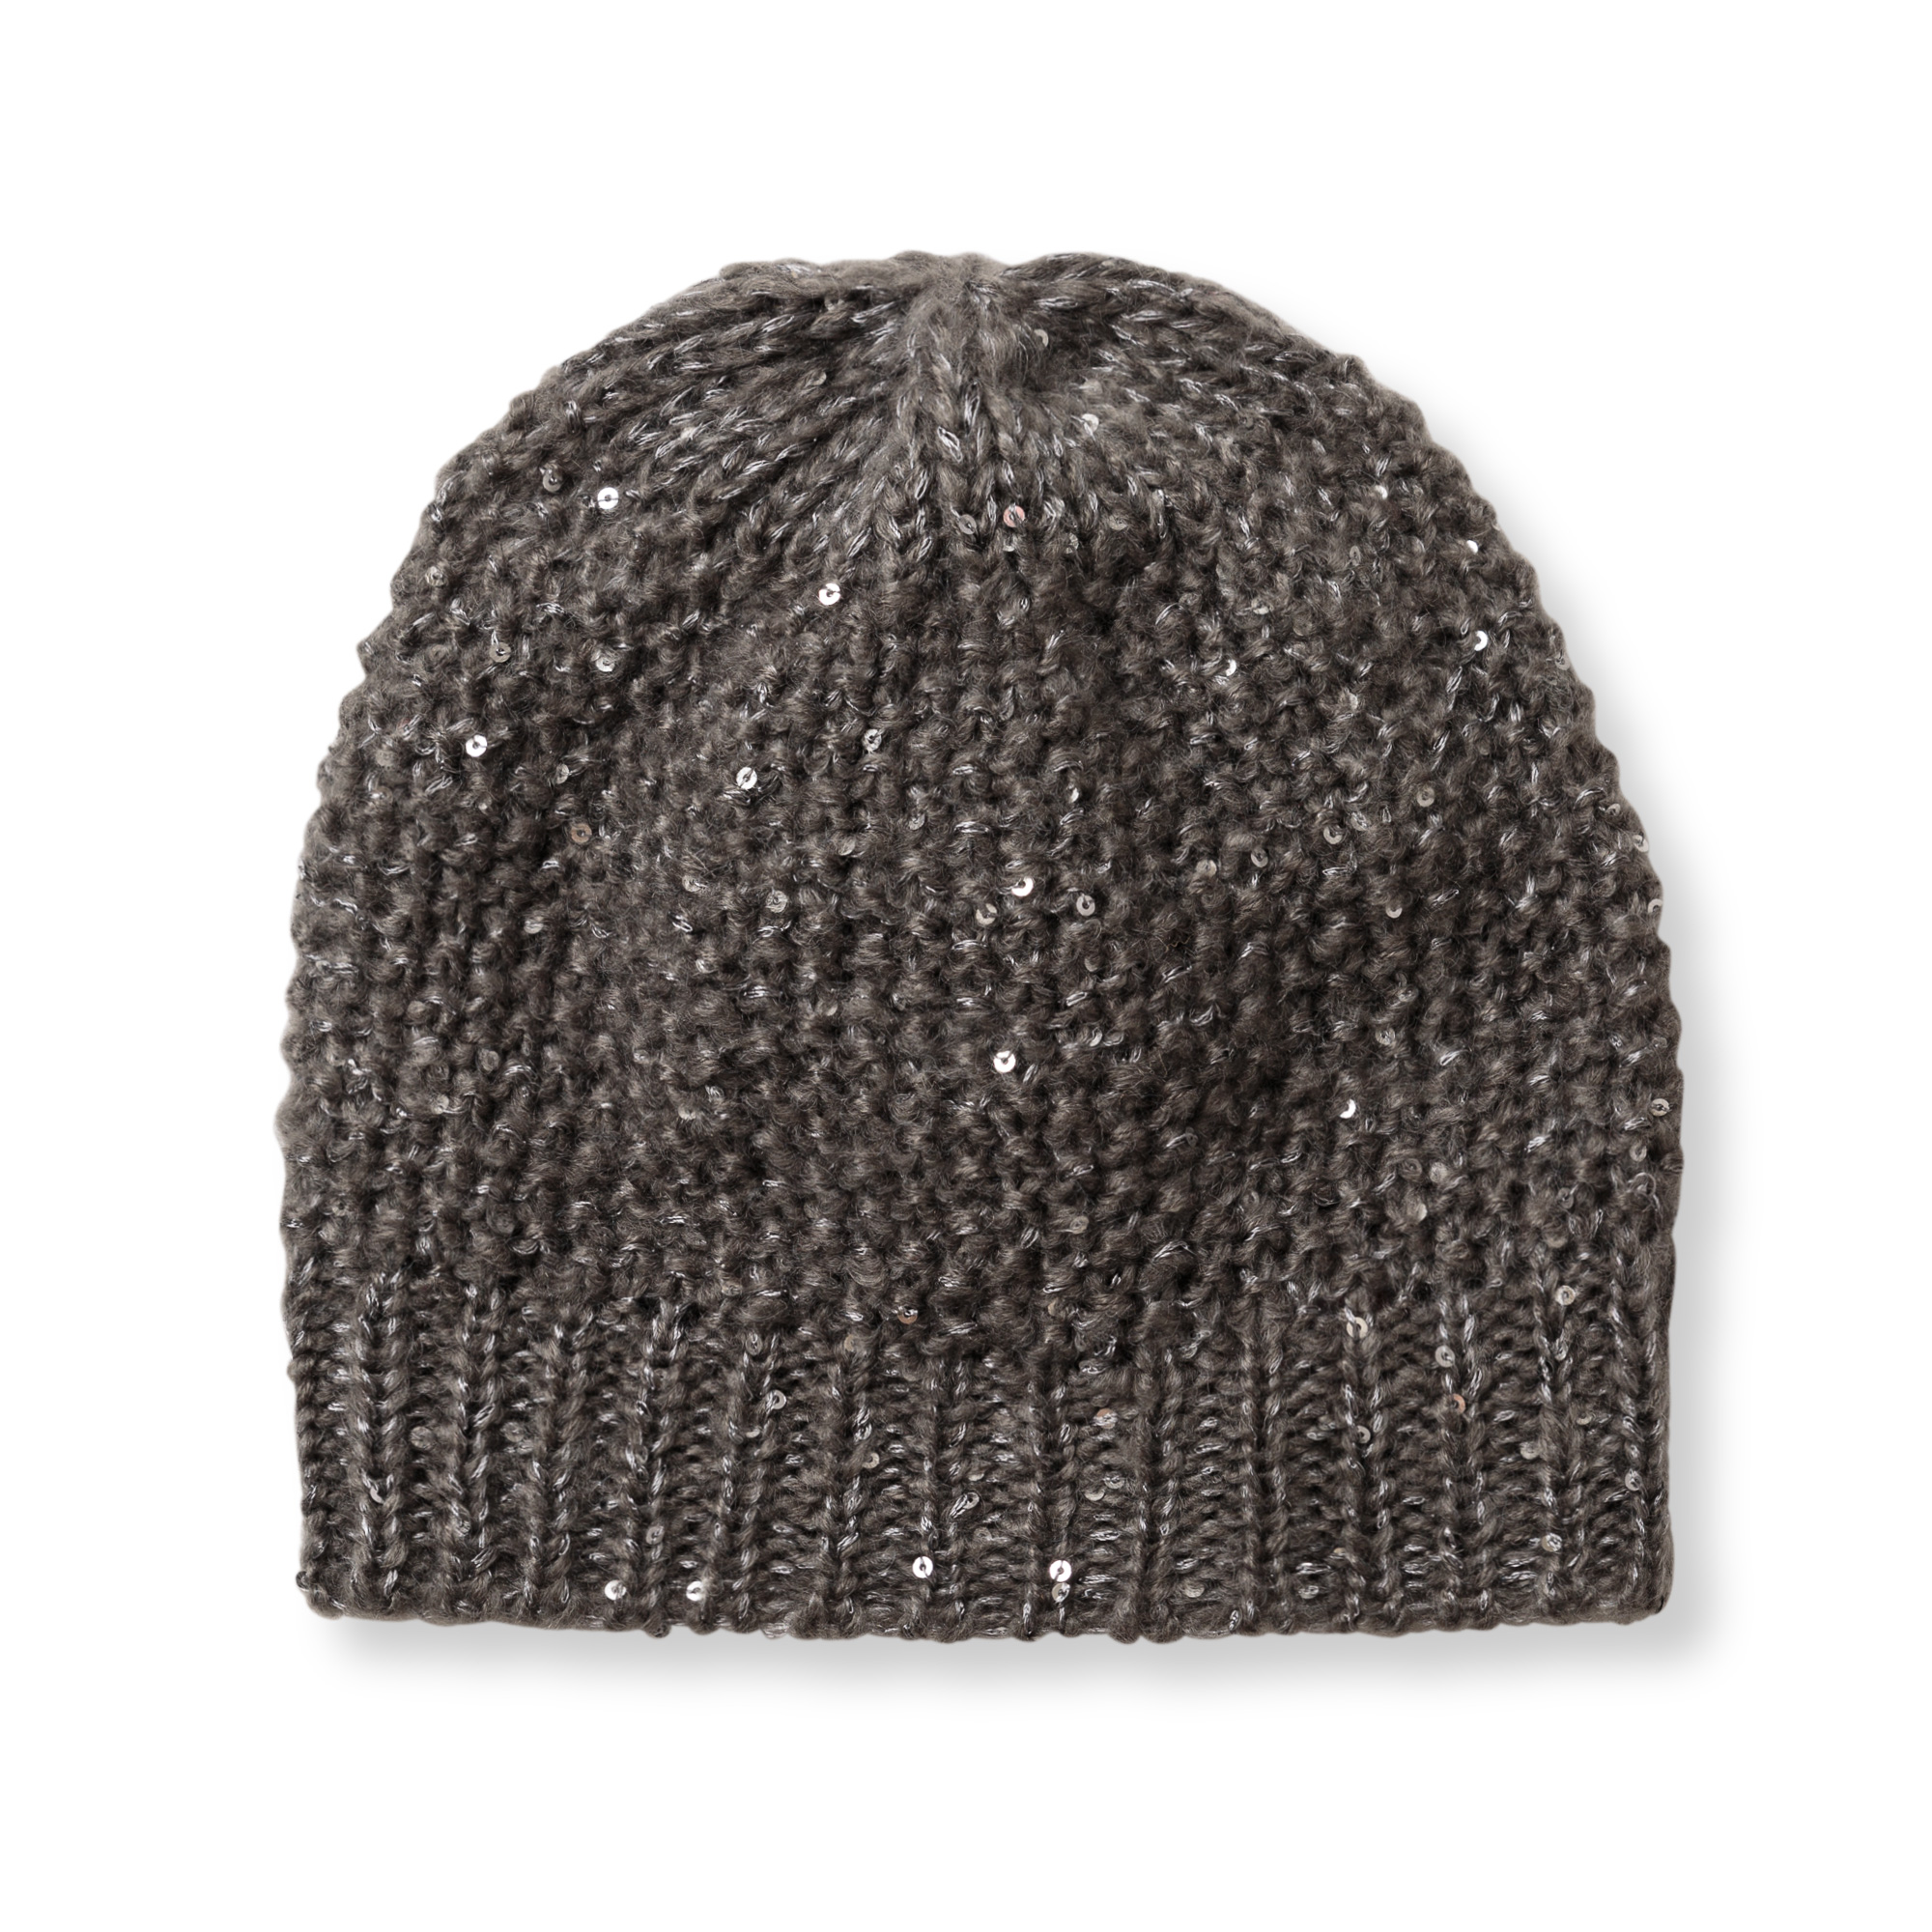 Sparkle Sequin Beanie Hat  3a3df85358f